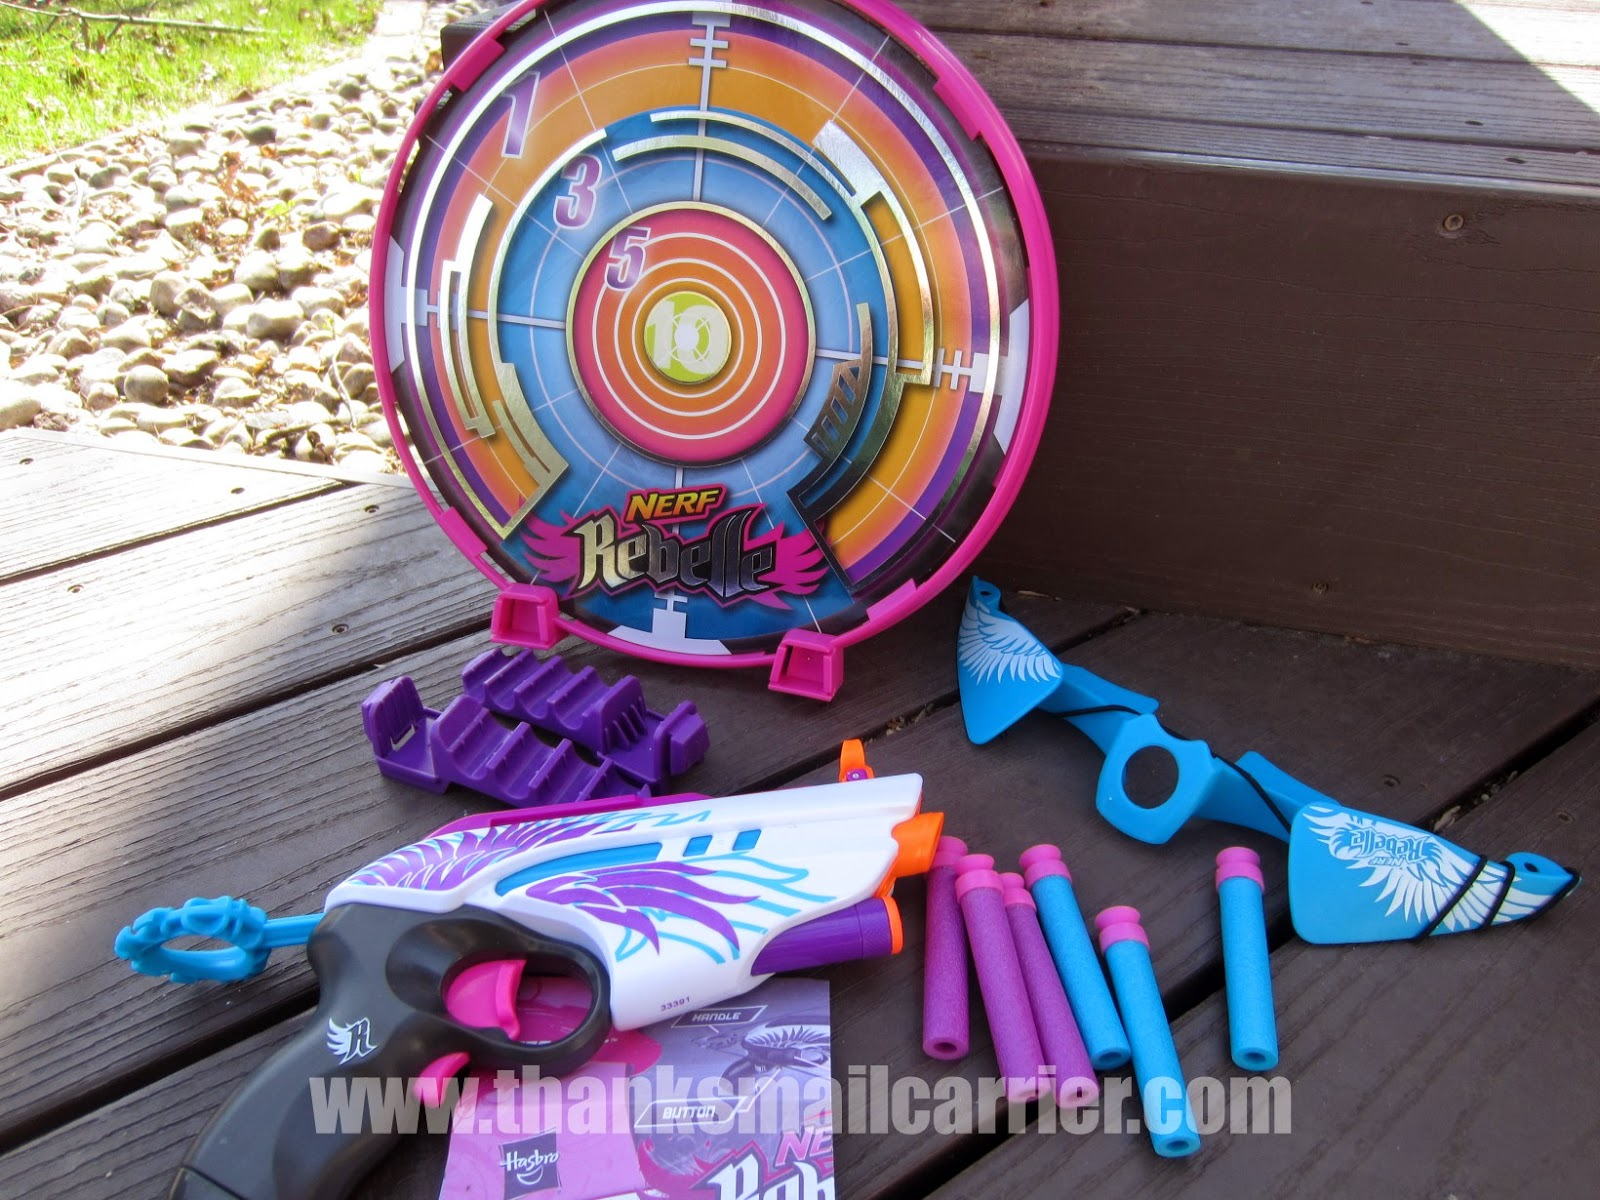 Nerf Rebelle review